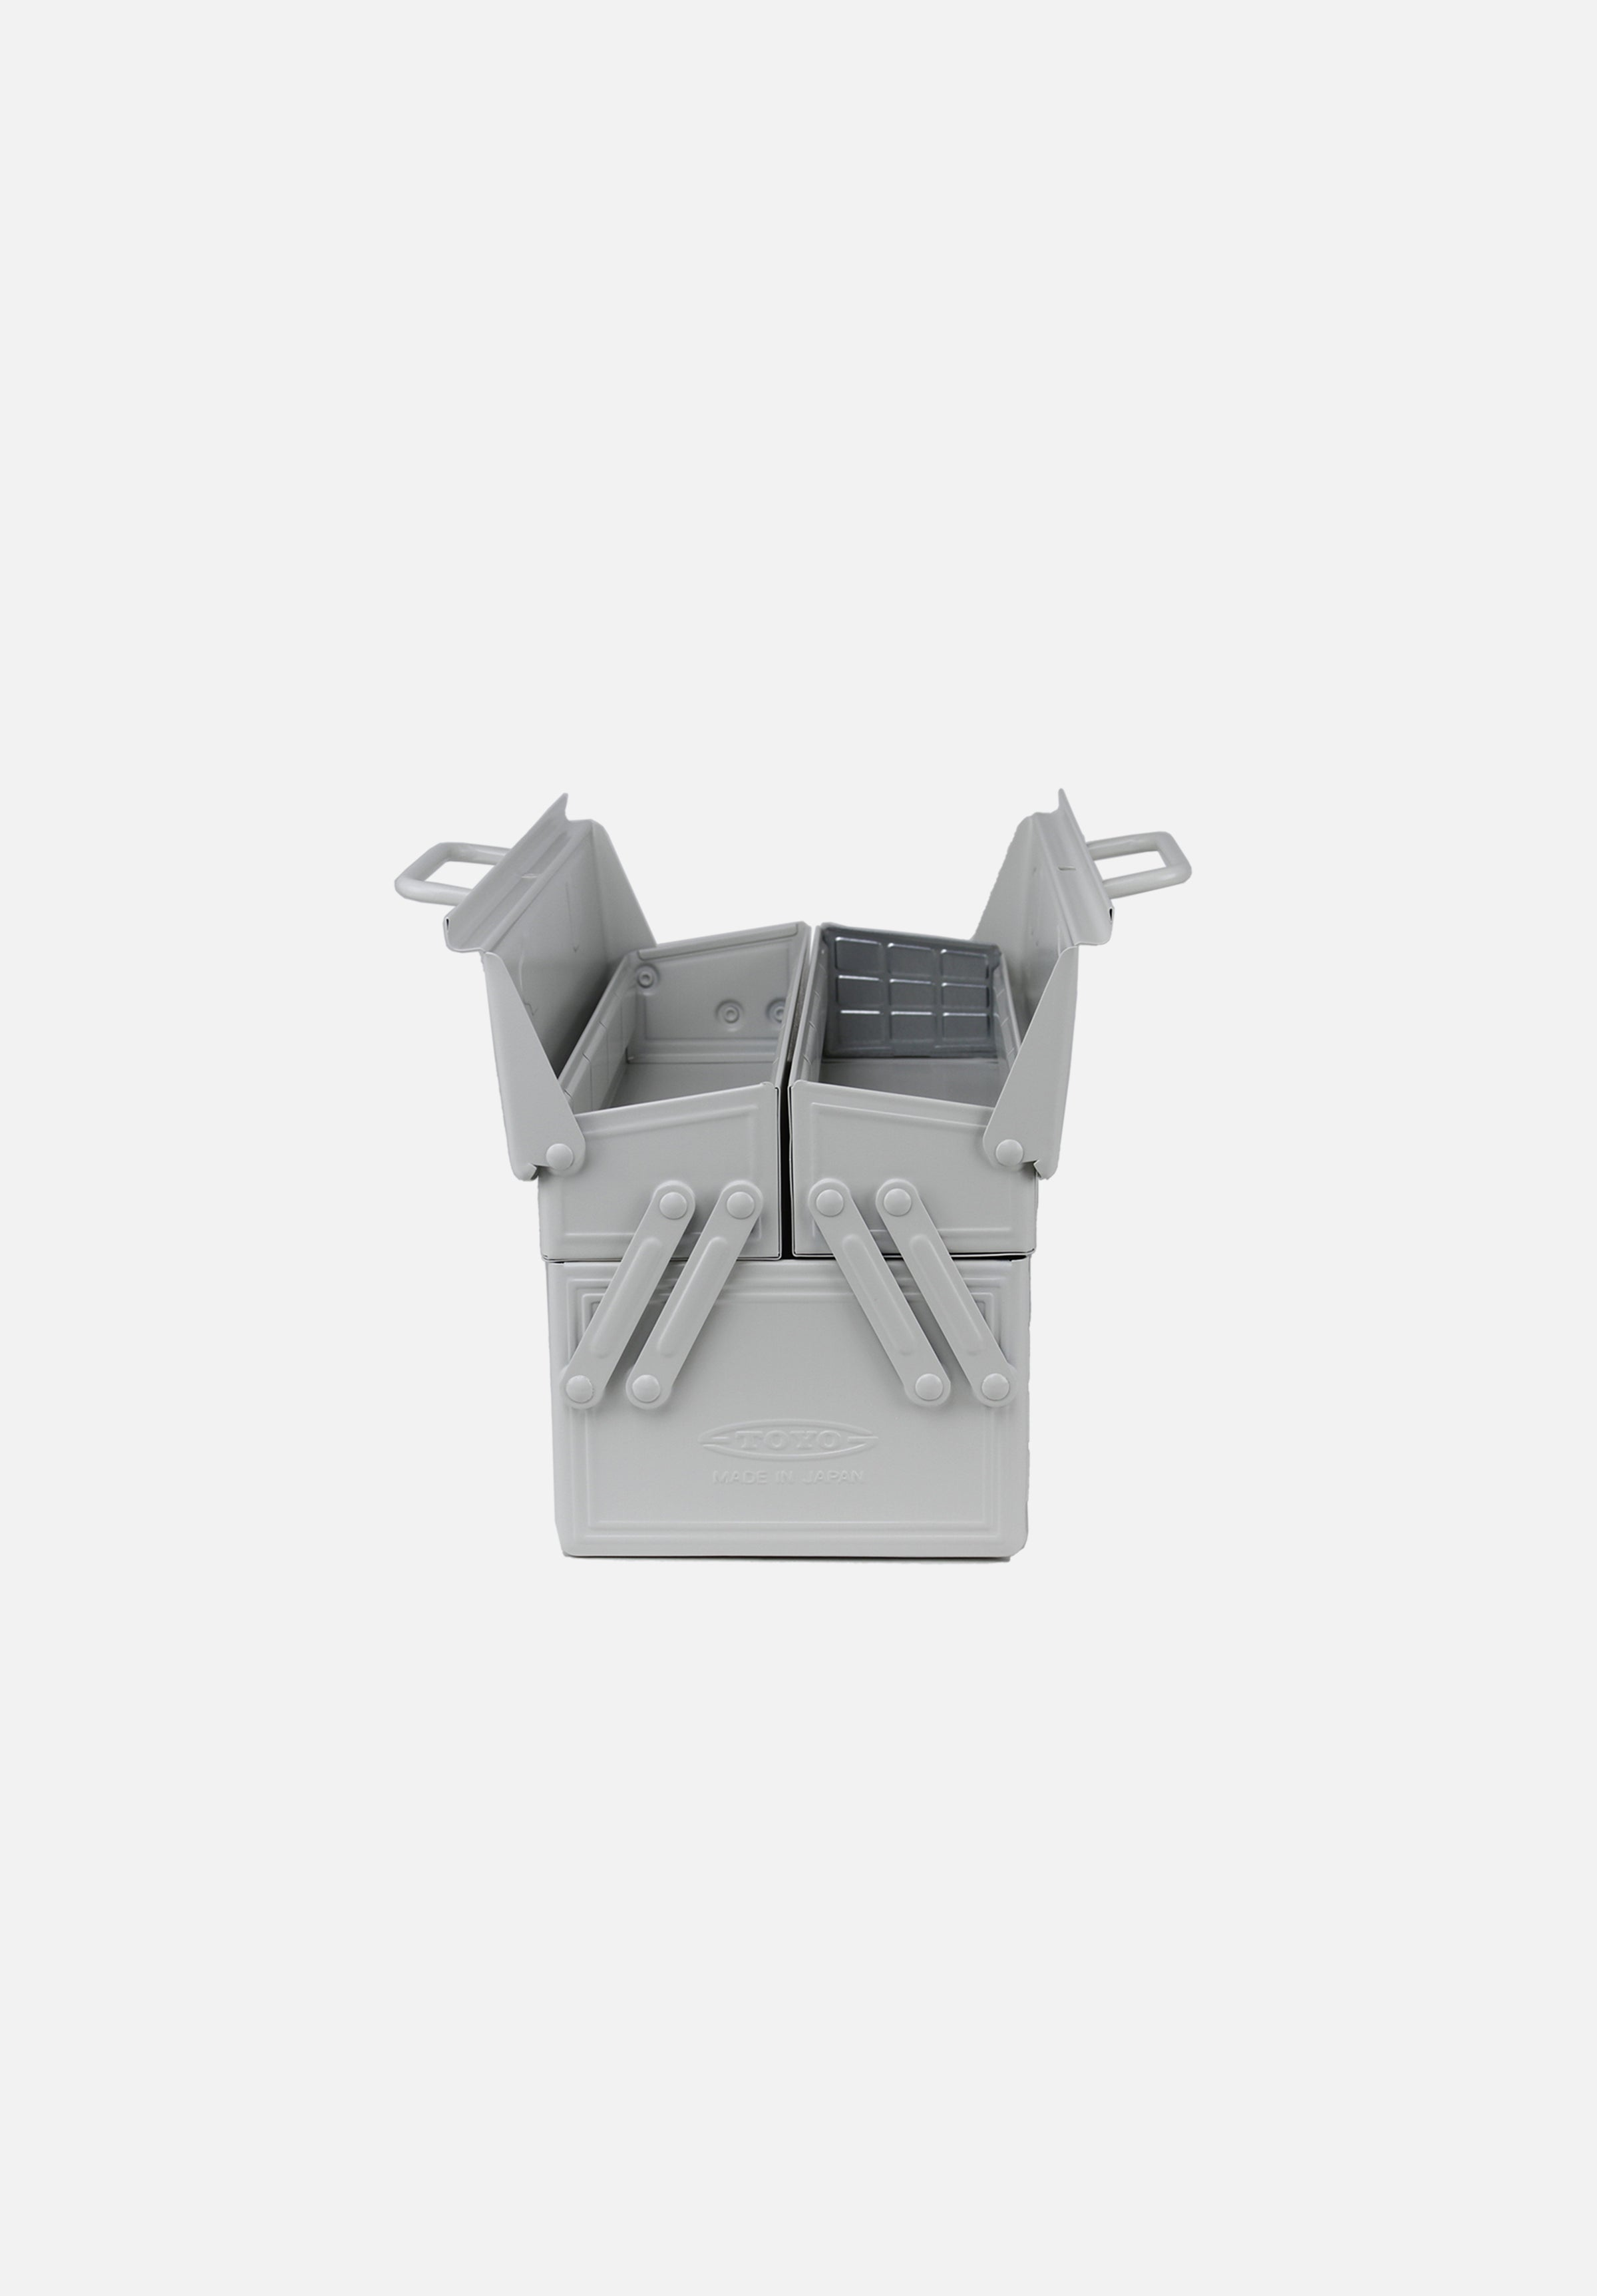 ST-350 Tool Box — White